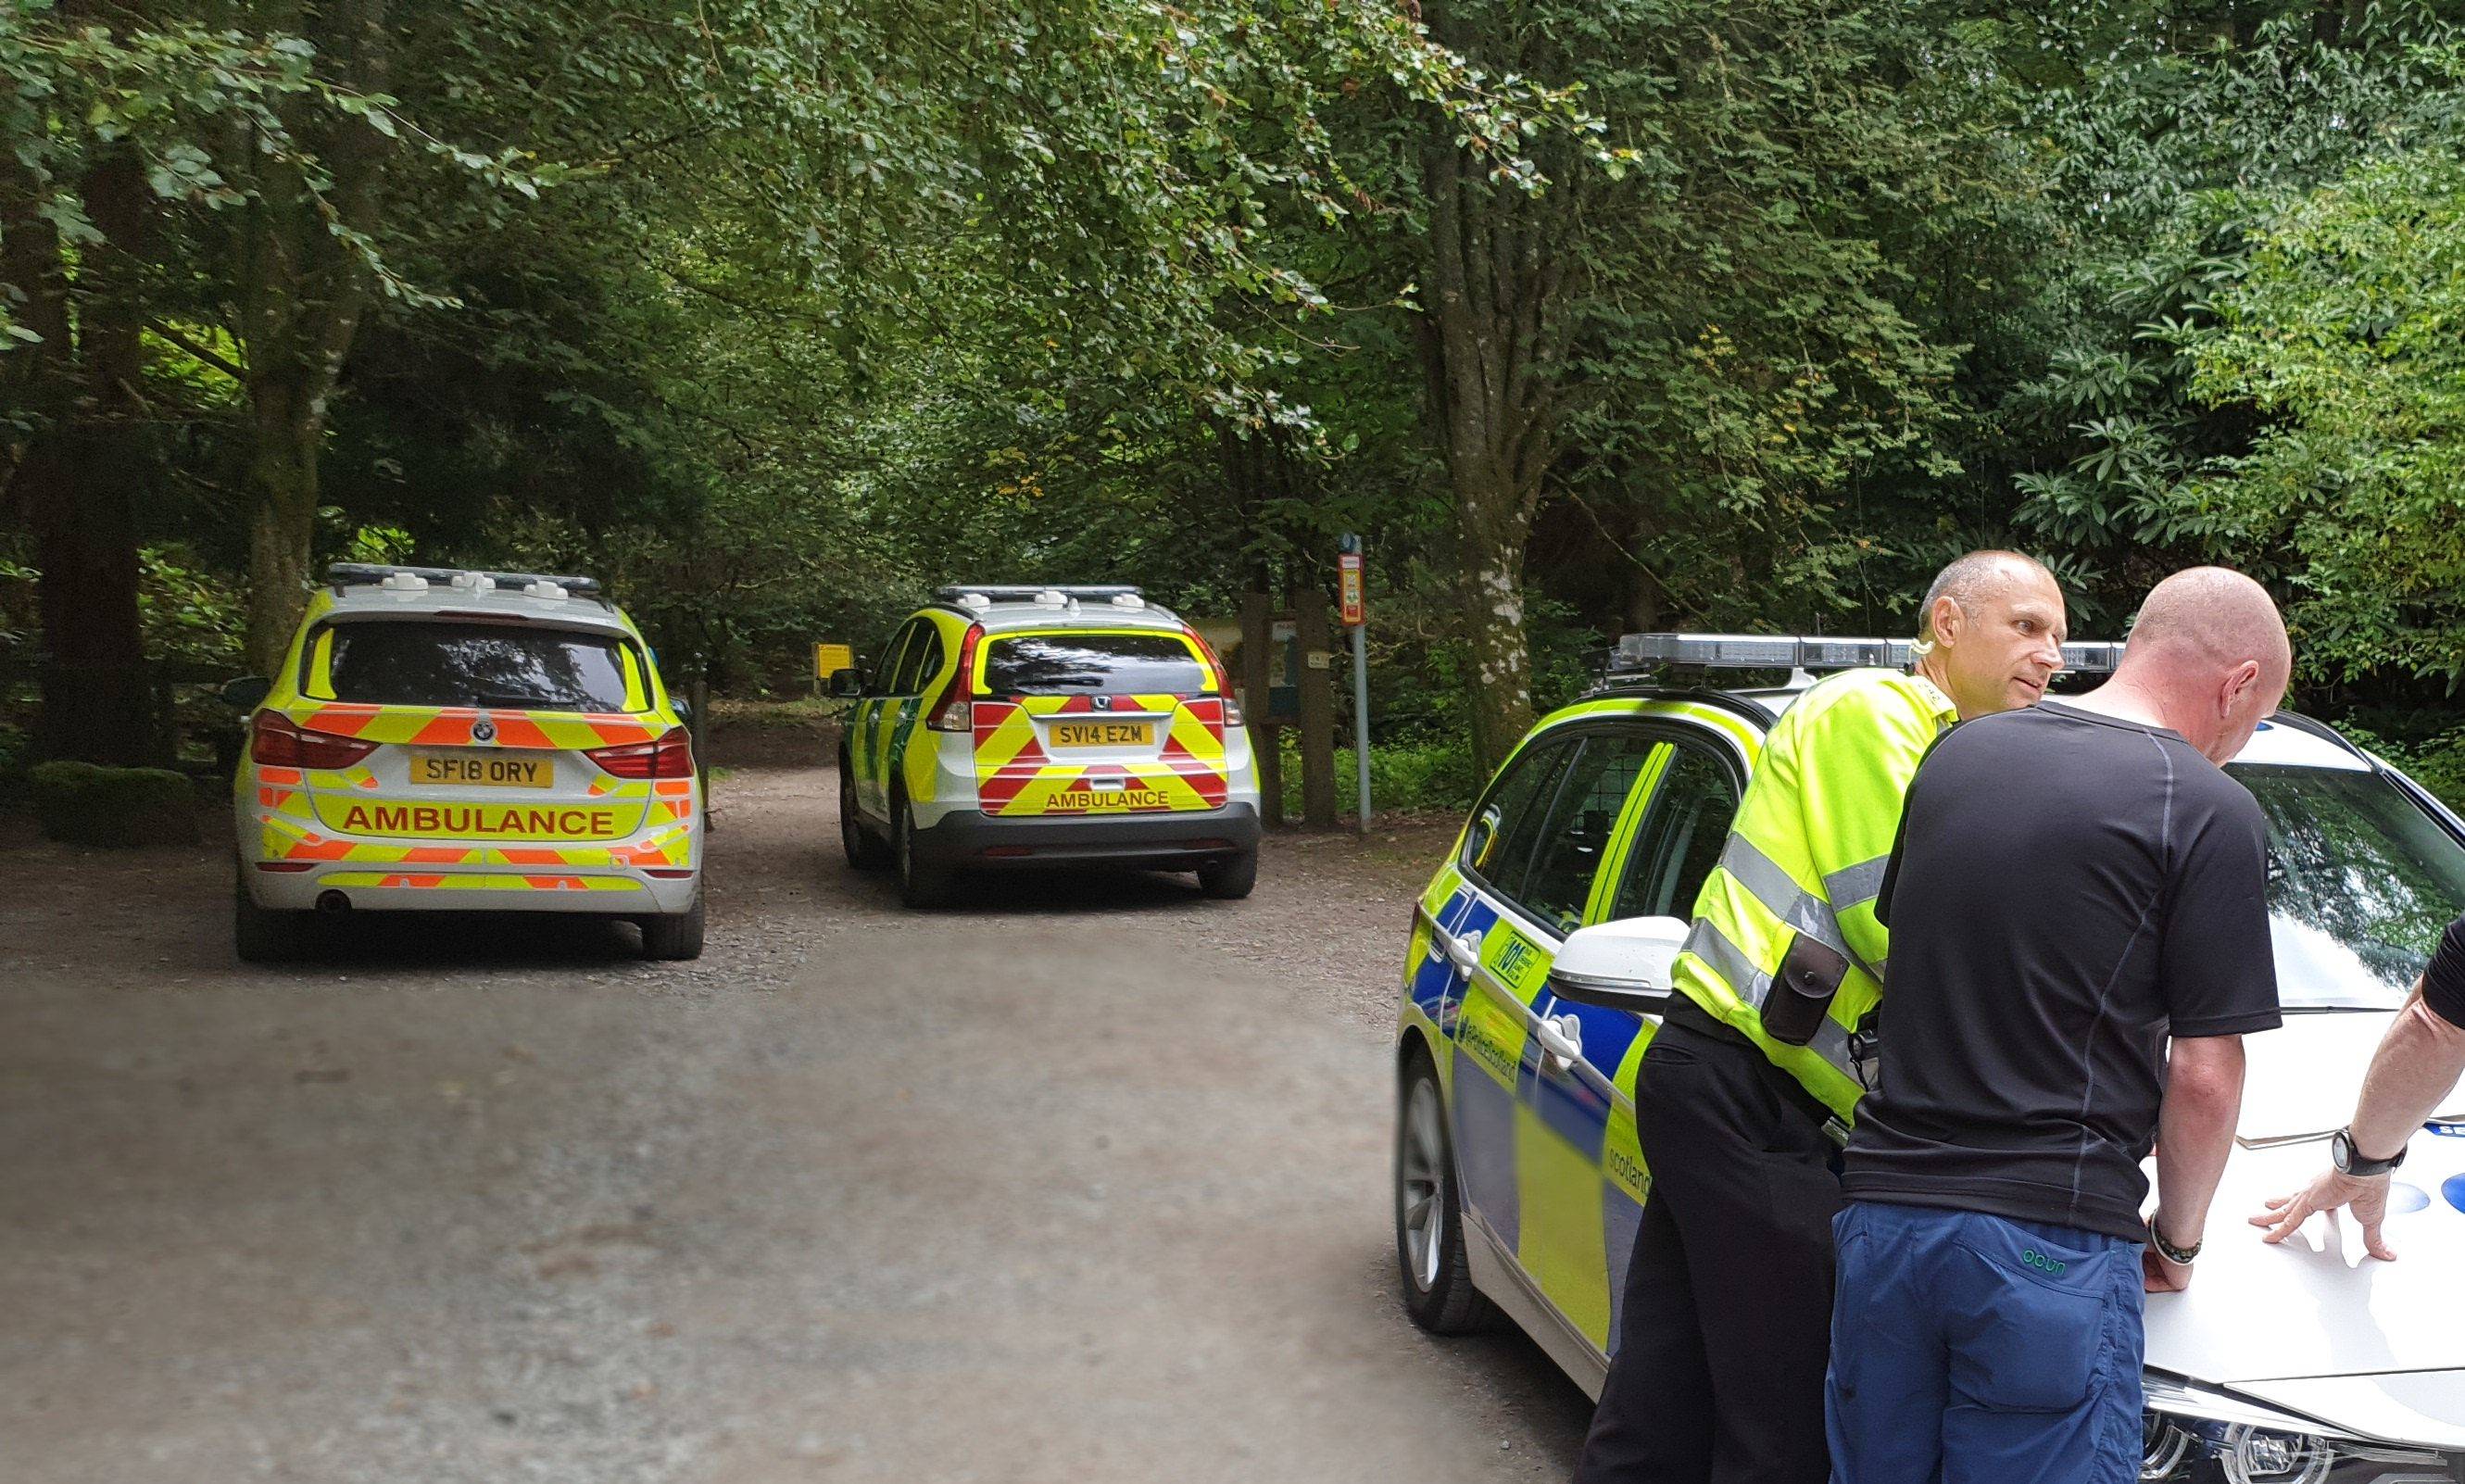 Police at the scene at The Birks of Aberfeldy.